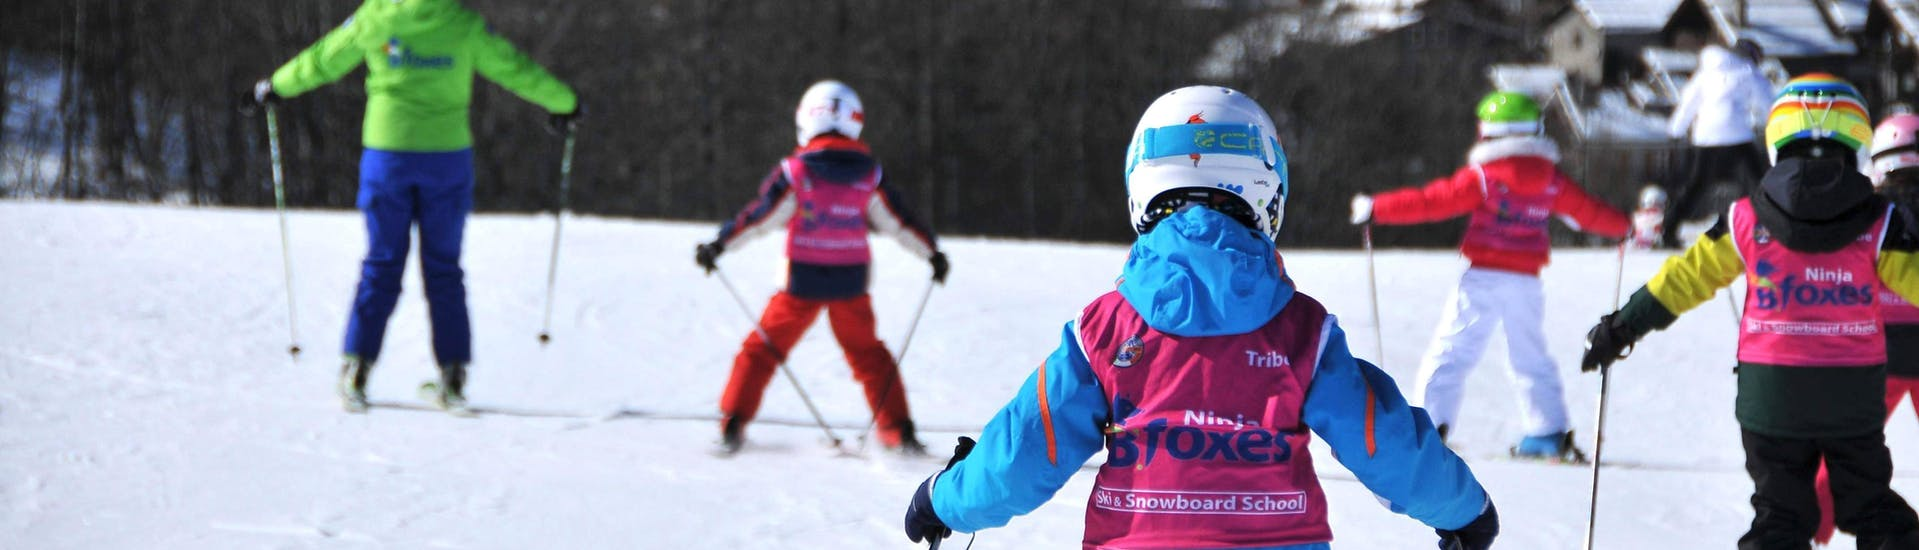 Kids are learning how to ski in Kids Ski Lessons (4-12 y.) - All Levels organised by the ski school Scuola di Sci B.foxes.